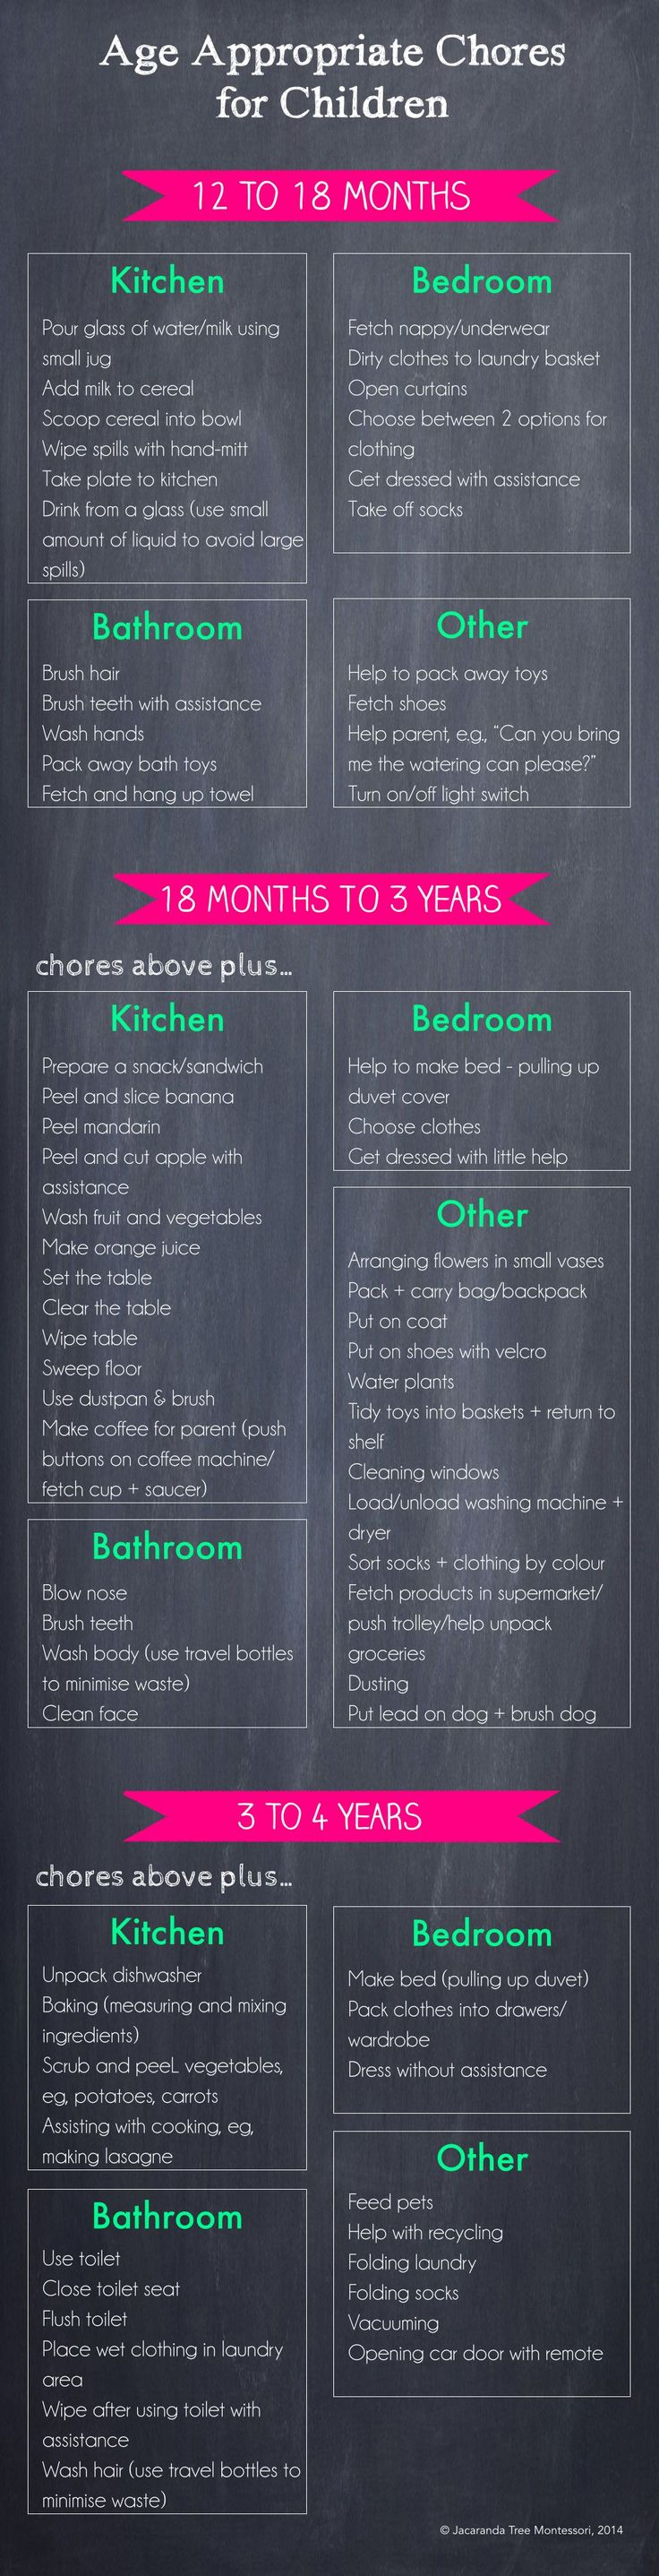 Age Appropriate Chores for Children by jacarandatreemontessori #Kids #Chores